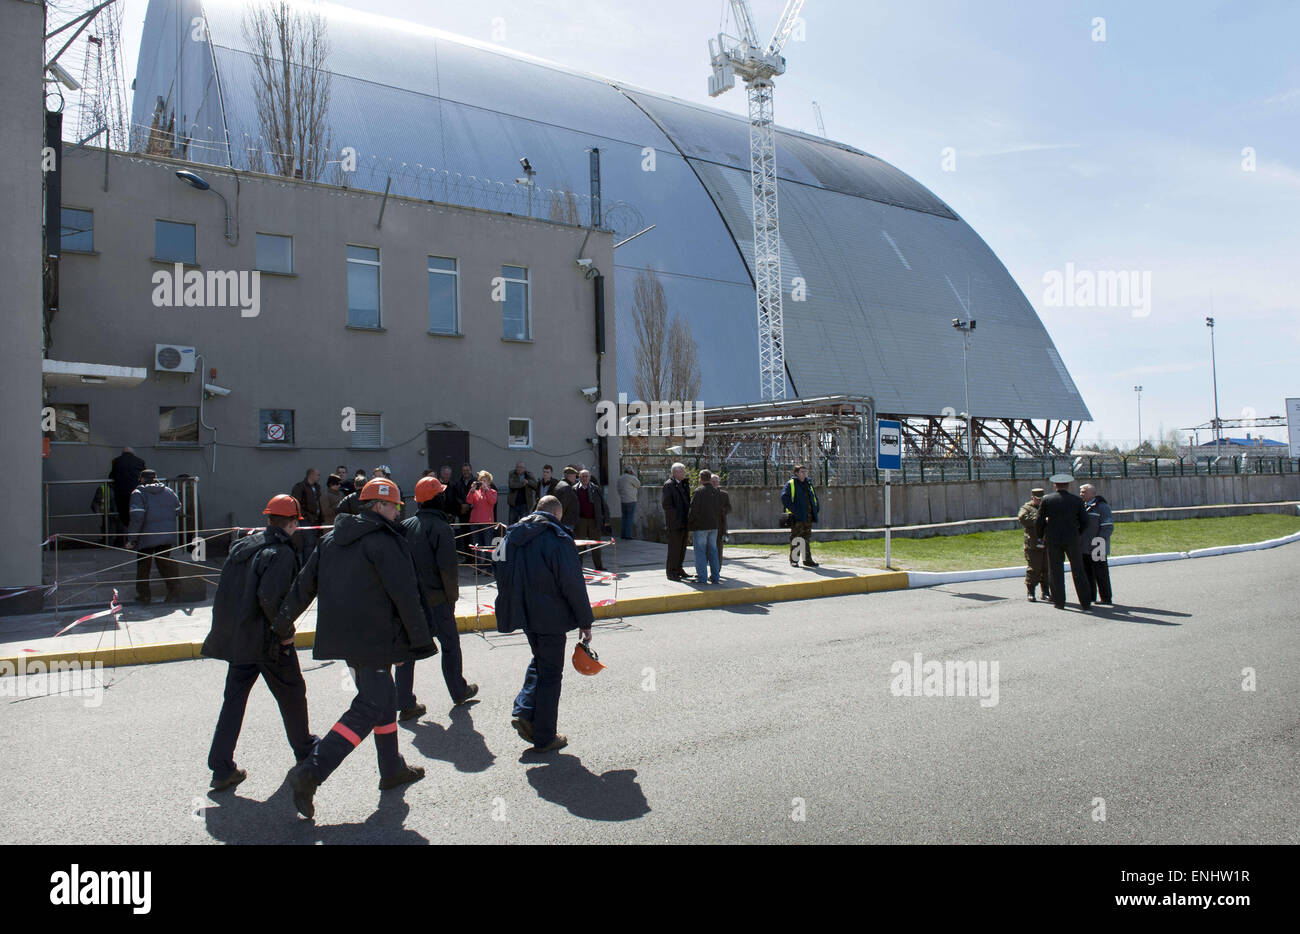 Chernobyl, Ukraine. 23rd Apr, 2015. A new secure dome will be built for the Chernobyl reactor number 4 damaged after - Stock Image